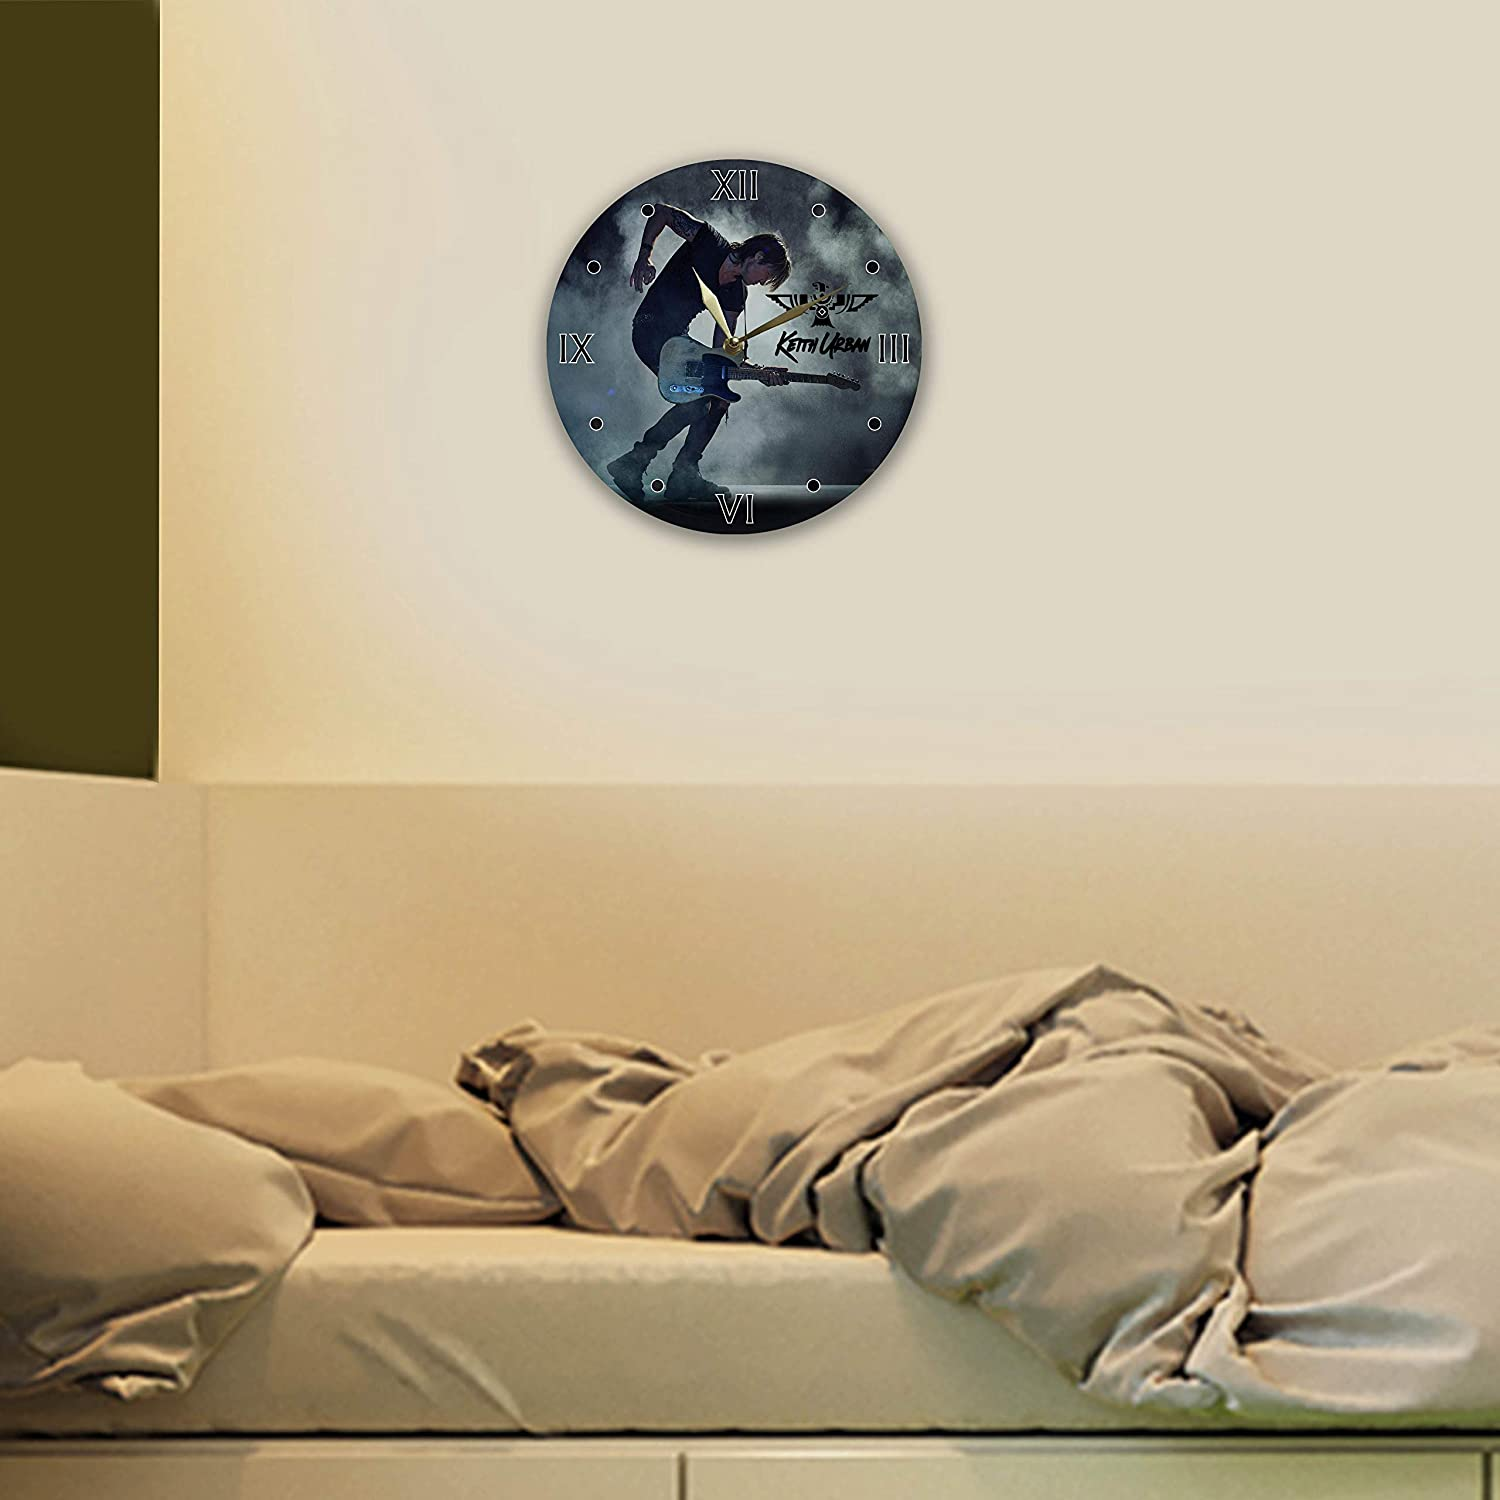 Keith Urban Painted Vinyl Clock 12 The Best Home Decor Unique Gifts for Fans Keith Urban Best Gift for Country Music Lover Wall Clock Keith Urban